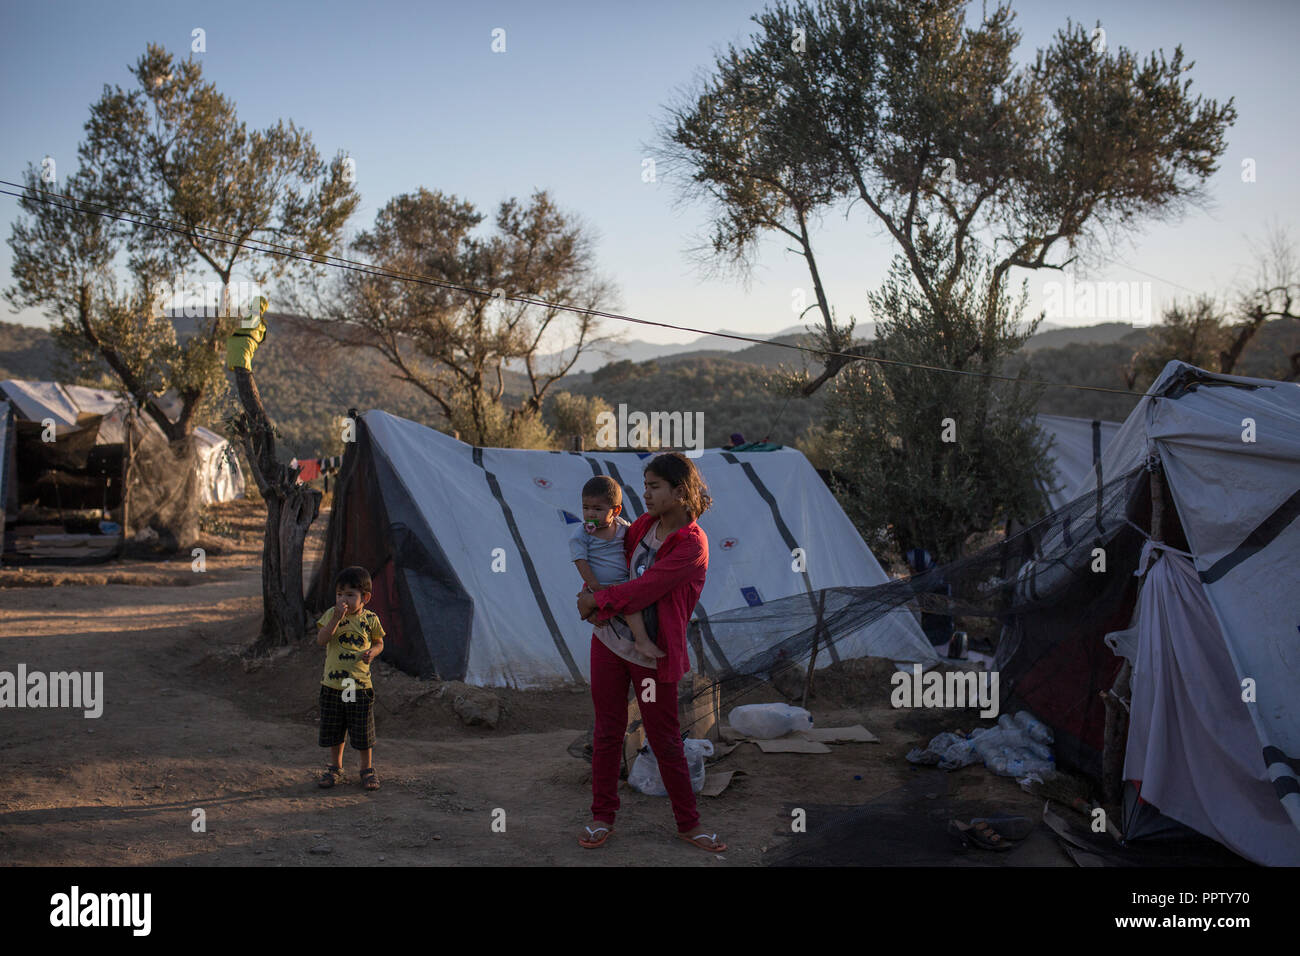 Moira, Greece. 24th Sep, 2018. Children stand between tents in a temporary camp next to the refugee camp of Moria. Credit: Socrates Baltagiannis/dpa/Alamy Live News - Stock Image